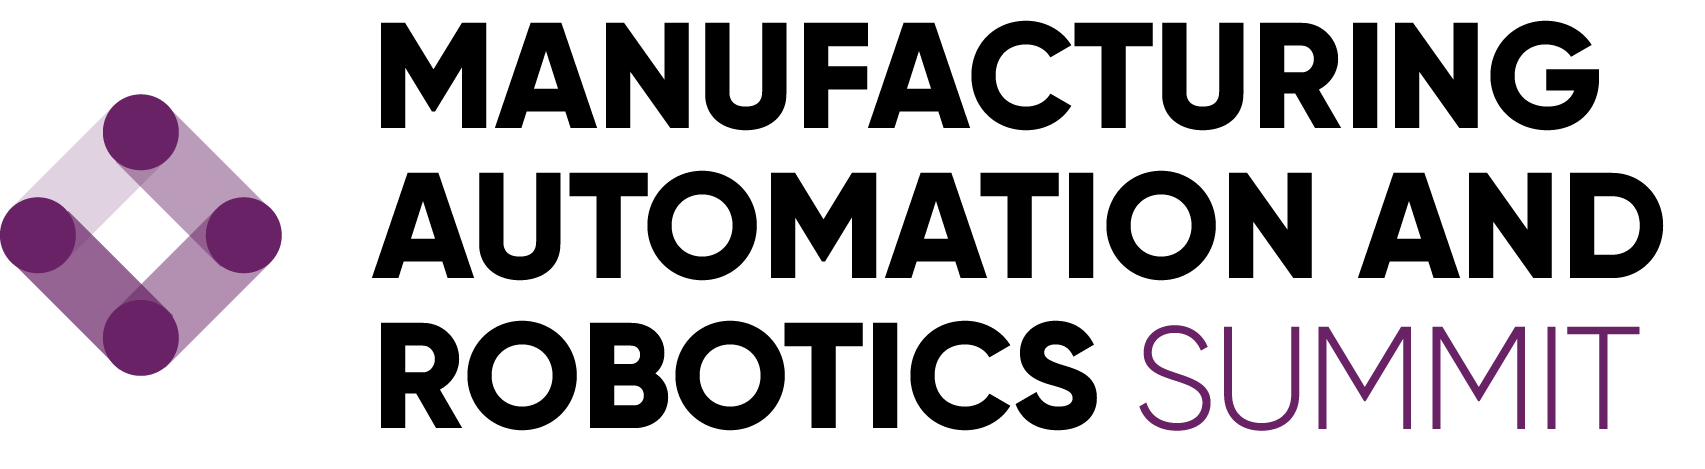 Manufacturing Automation & Robotics Summmit